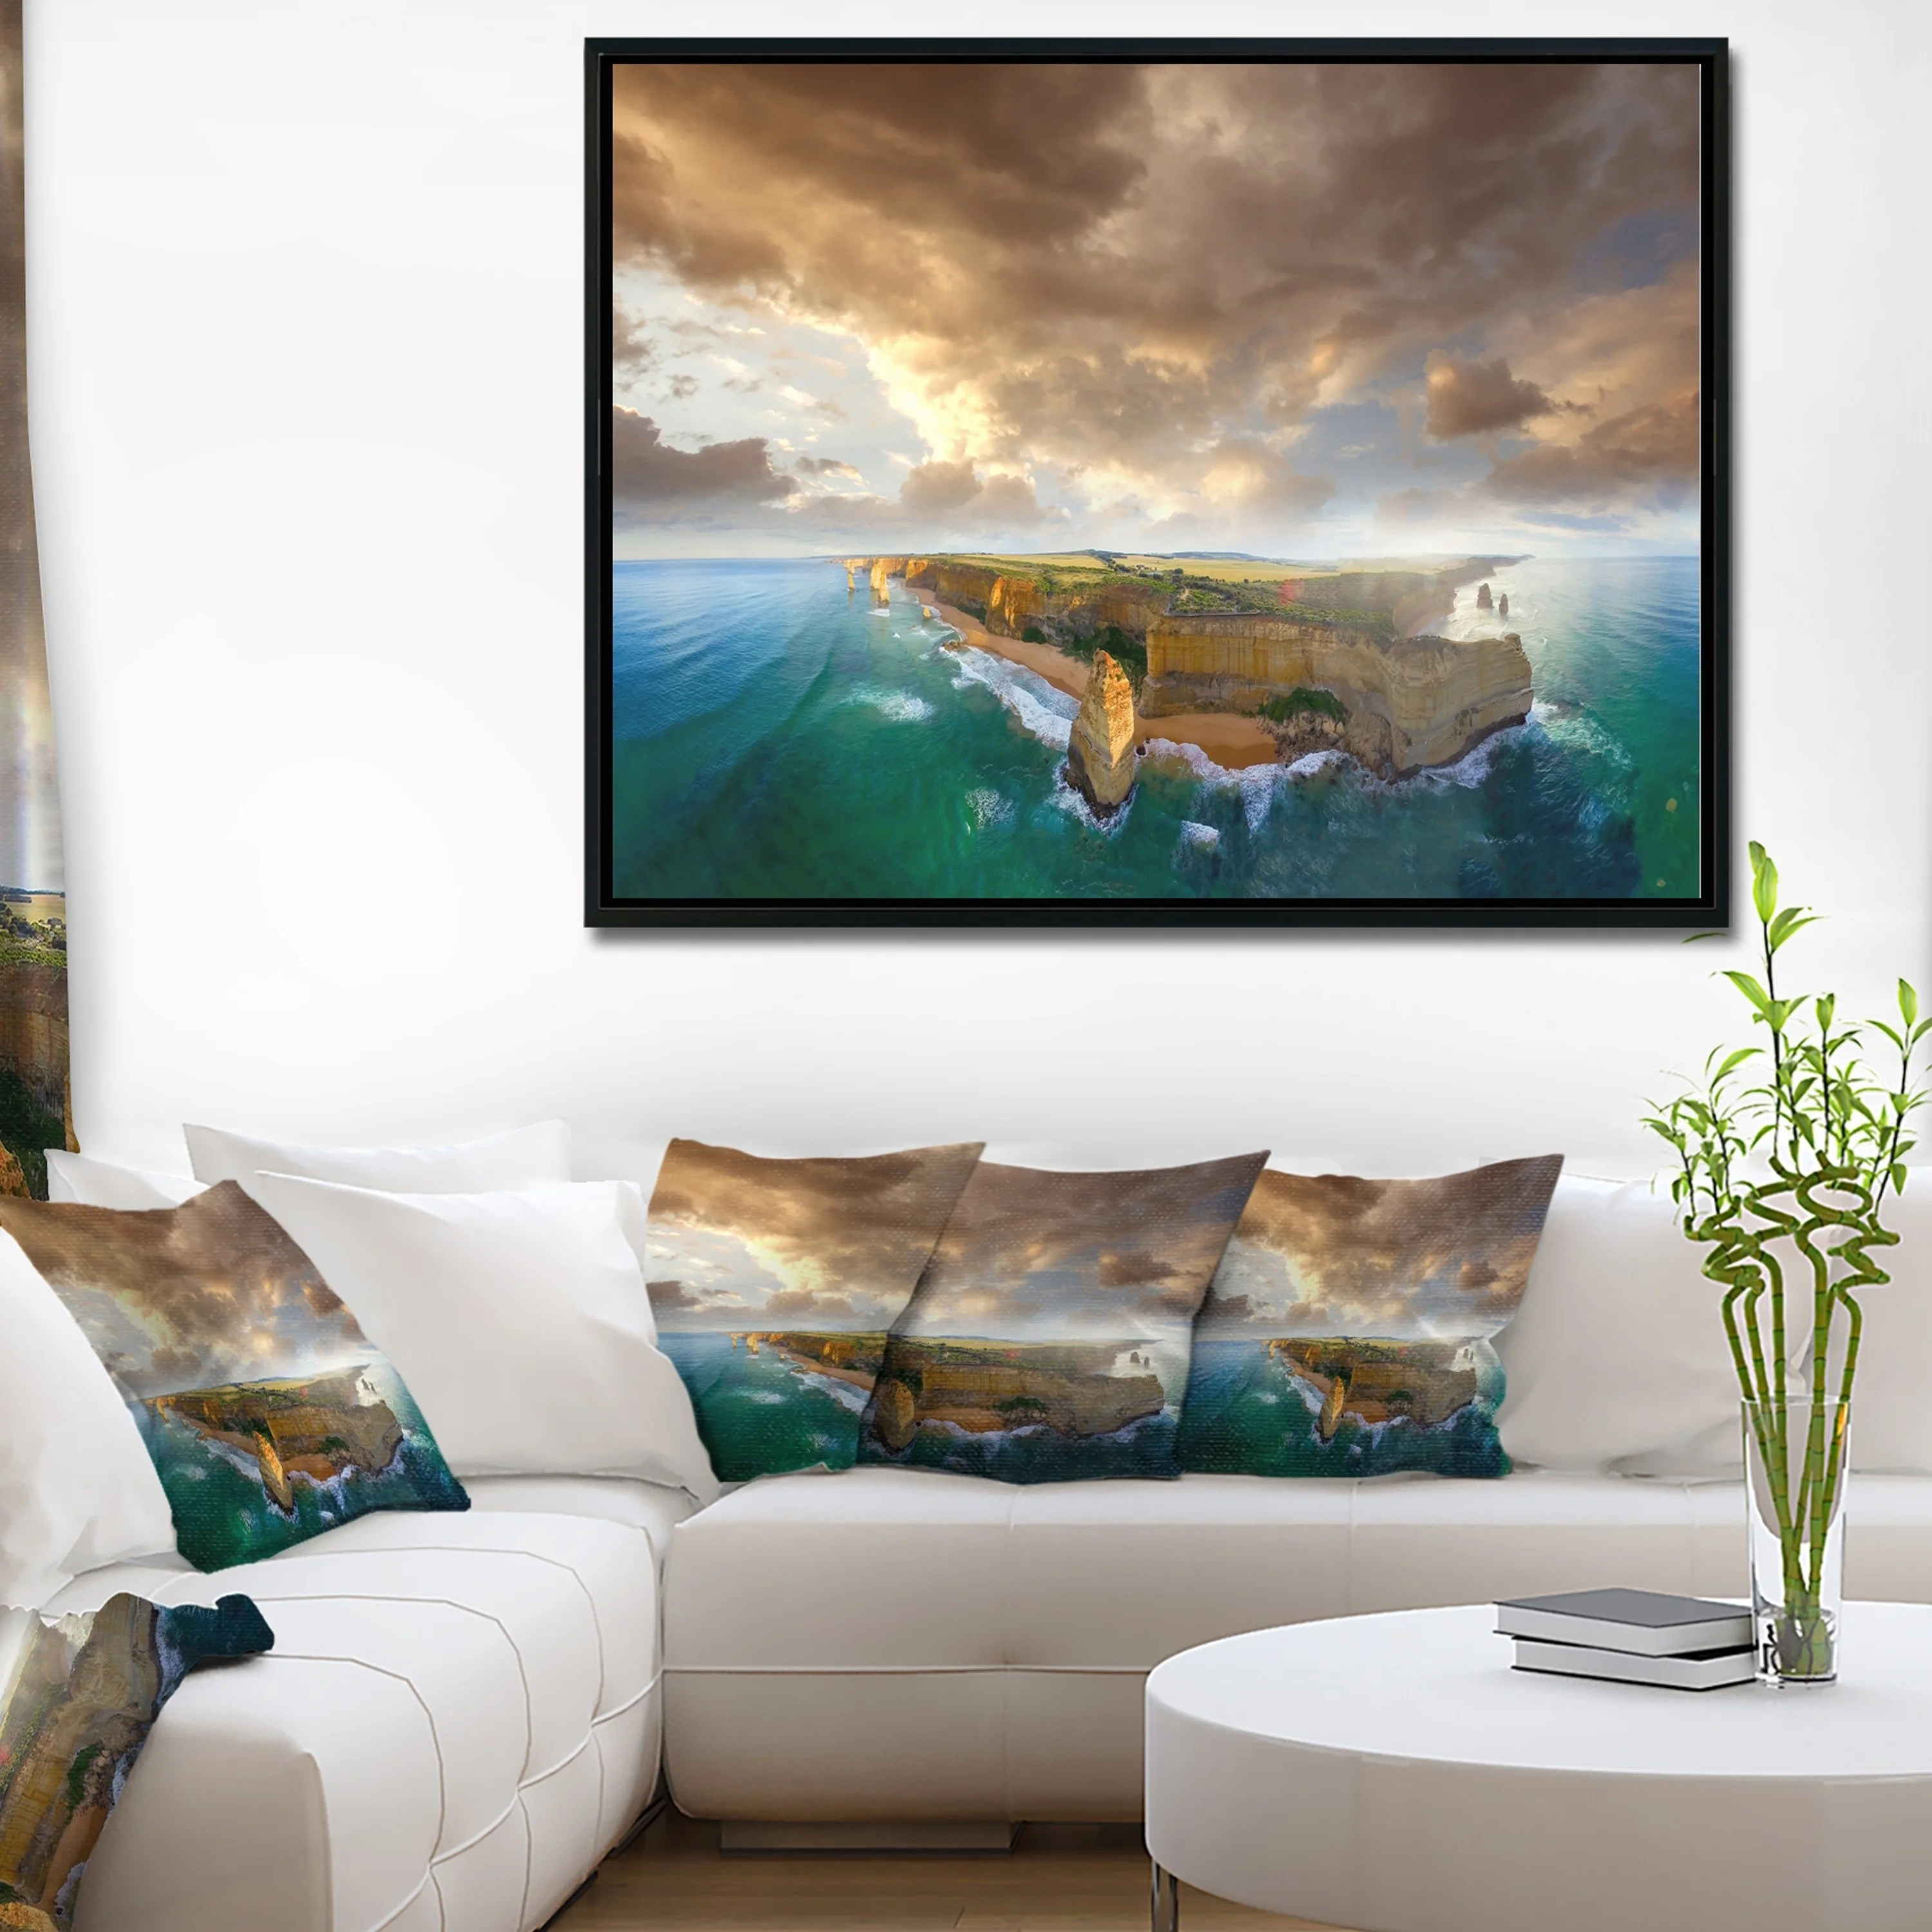 Wall Prints For Living Room Australia Designart Great Ocean Road Australia Blue Large Seascape Art Framed Canvas Print